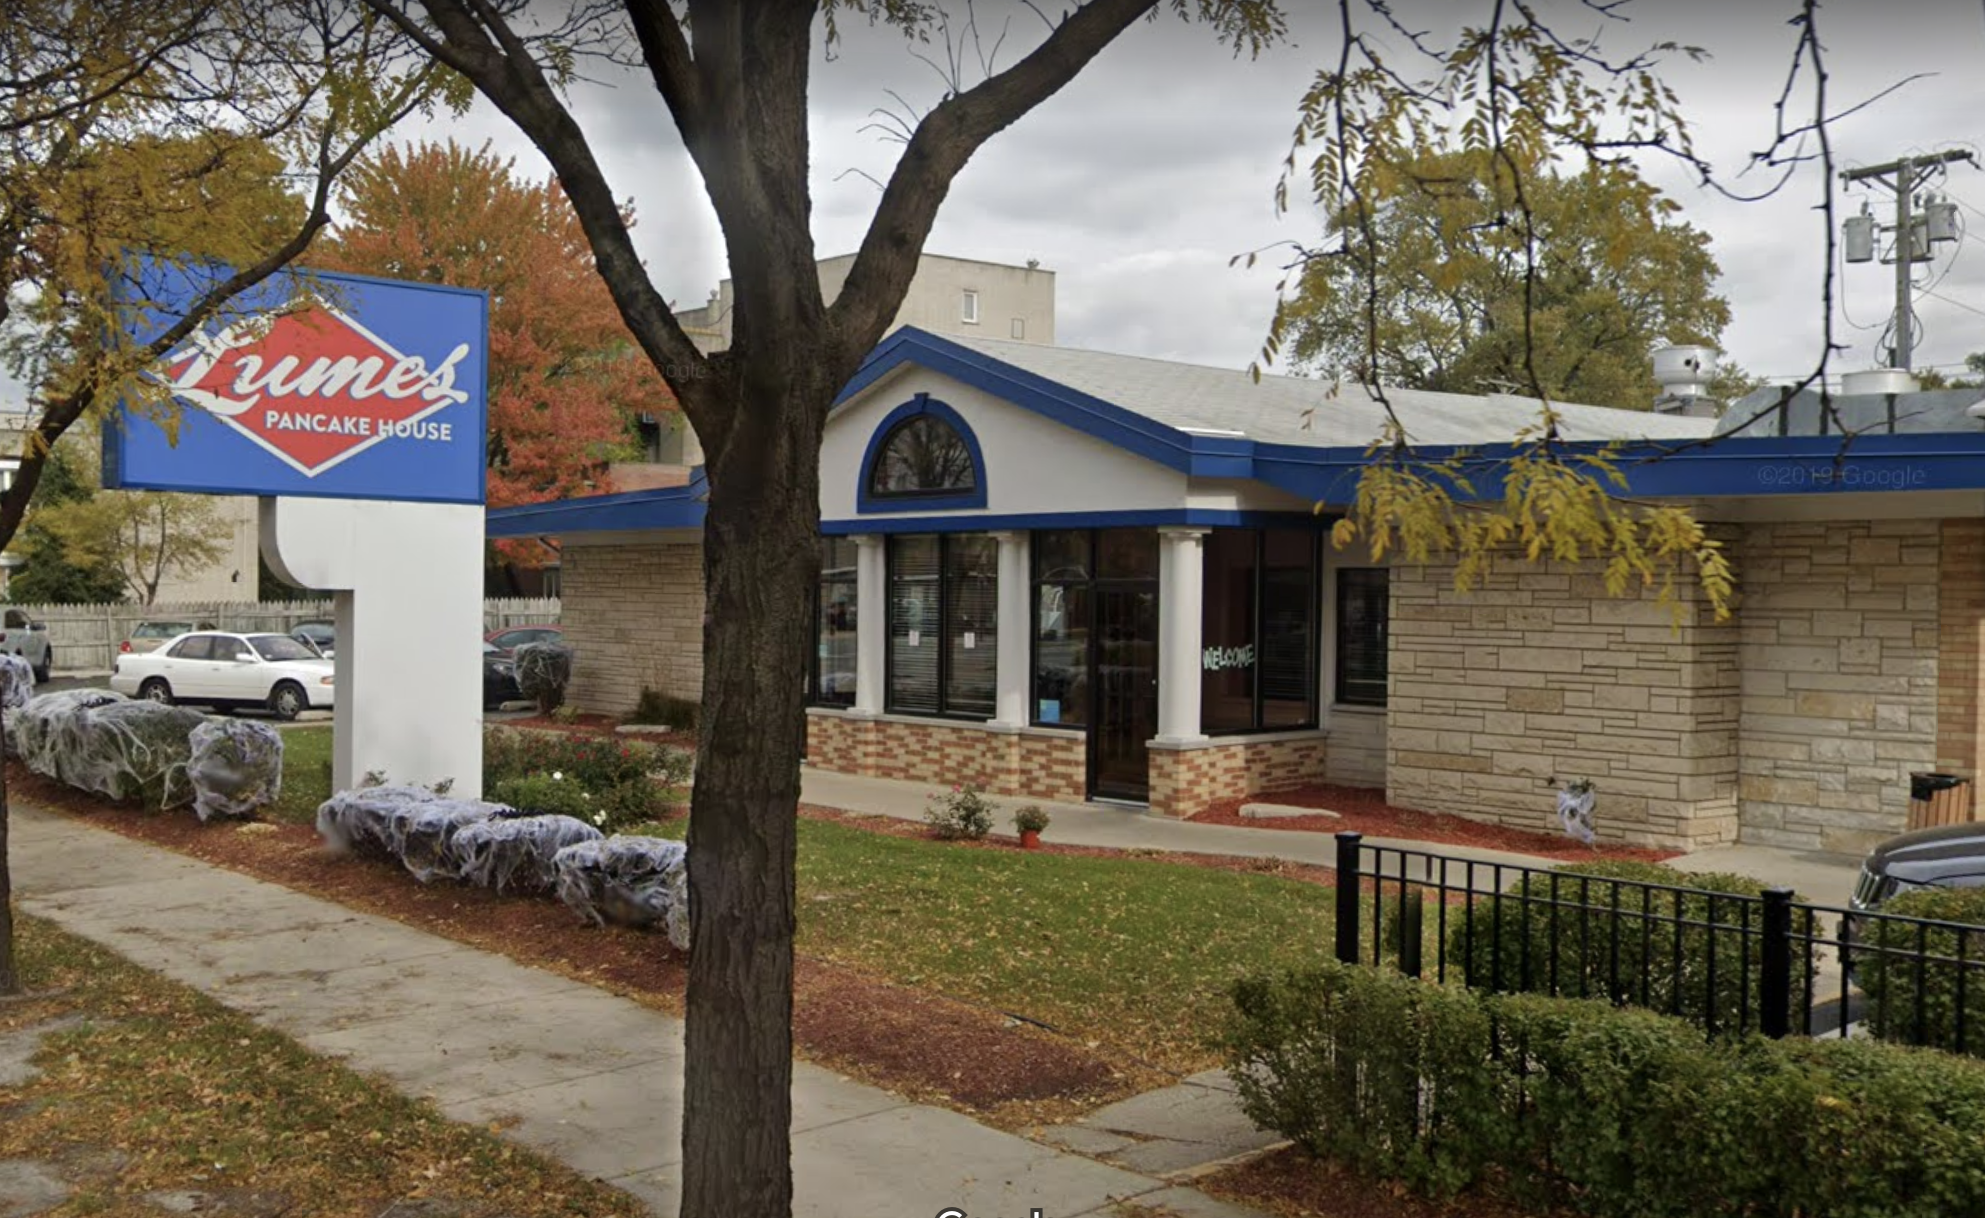 A large white and blue restaurant visible from the sidewalk.